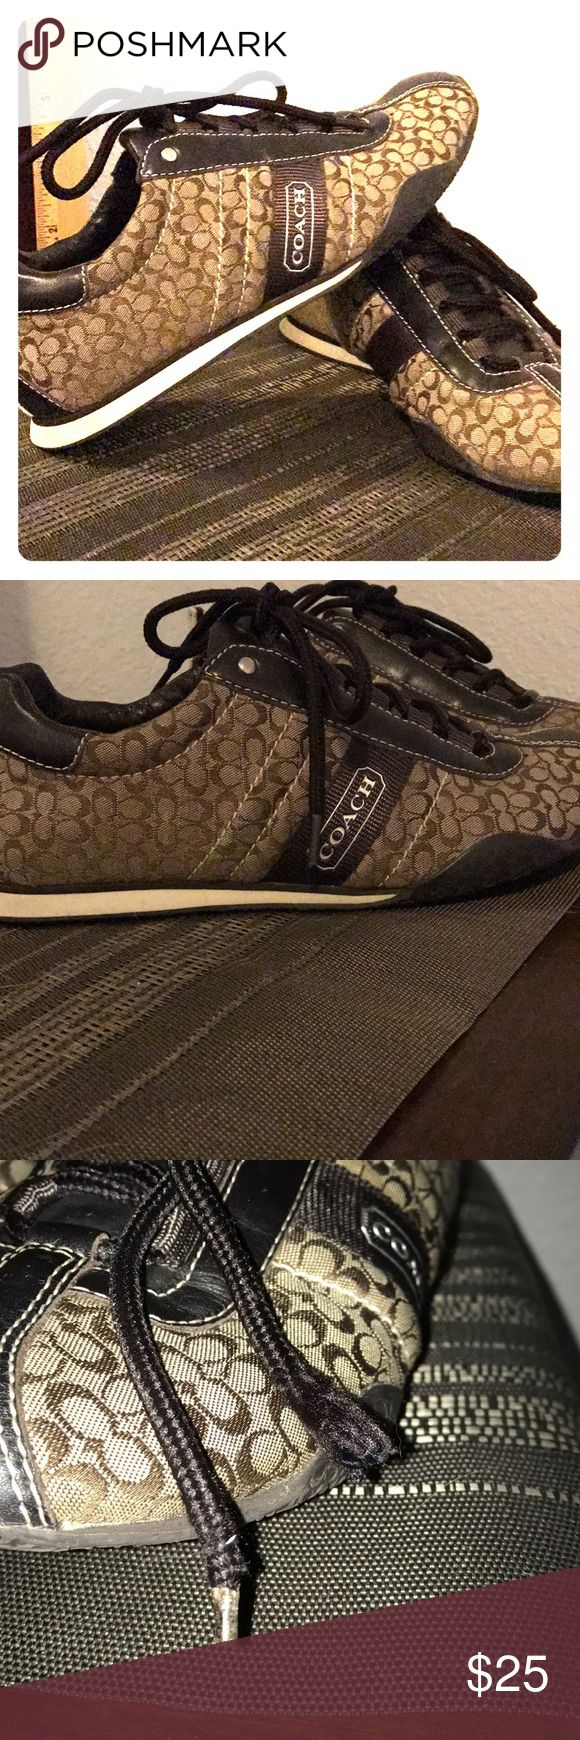 Brown Coach tennis shoes. Brown Coach tennis shoes. Lightly used fabric is in good condition. Needs a new shoelace on left shoe. Coach Shoes Sneakers